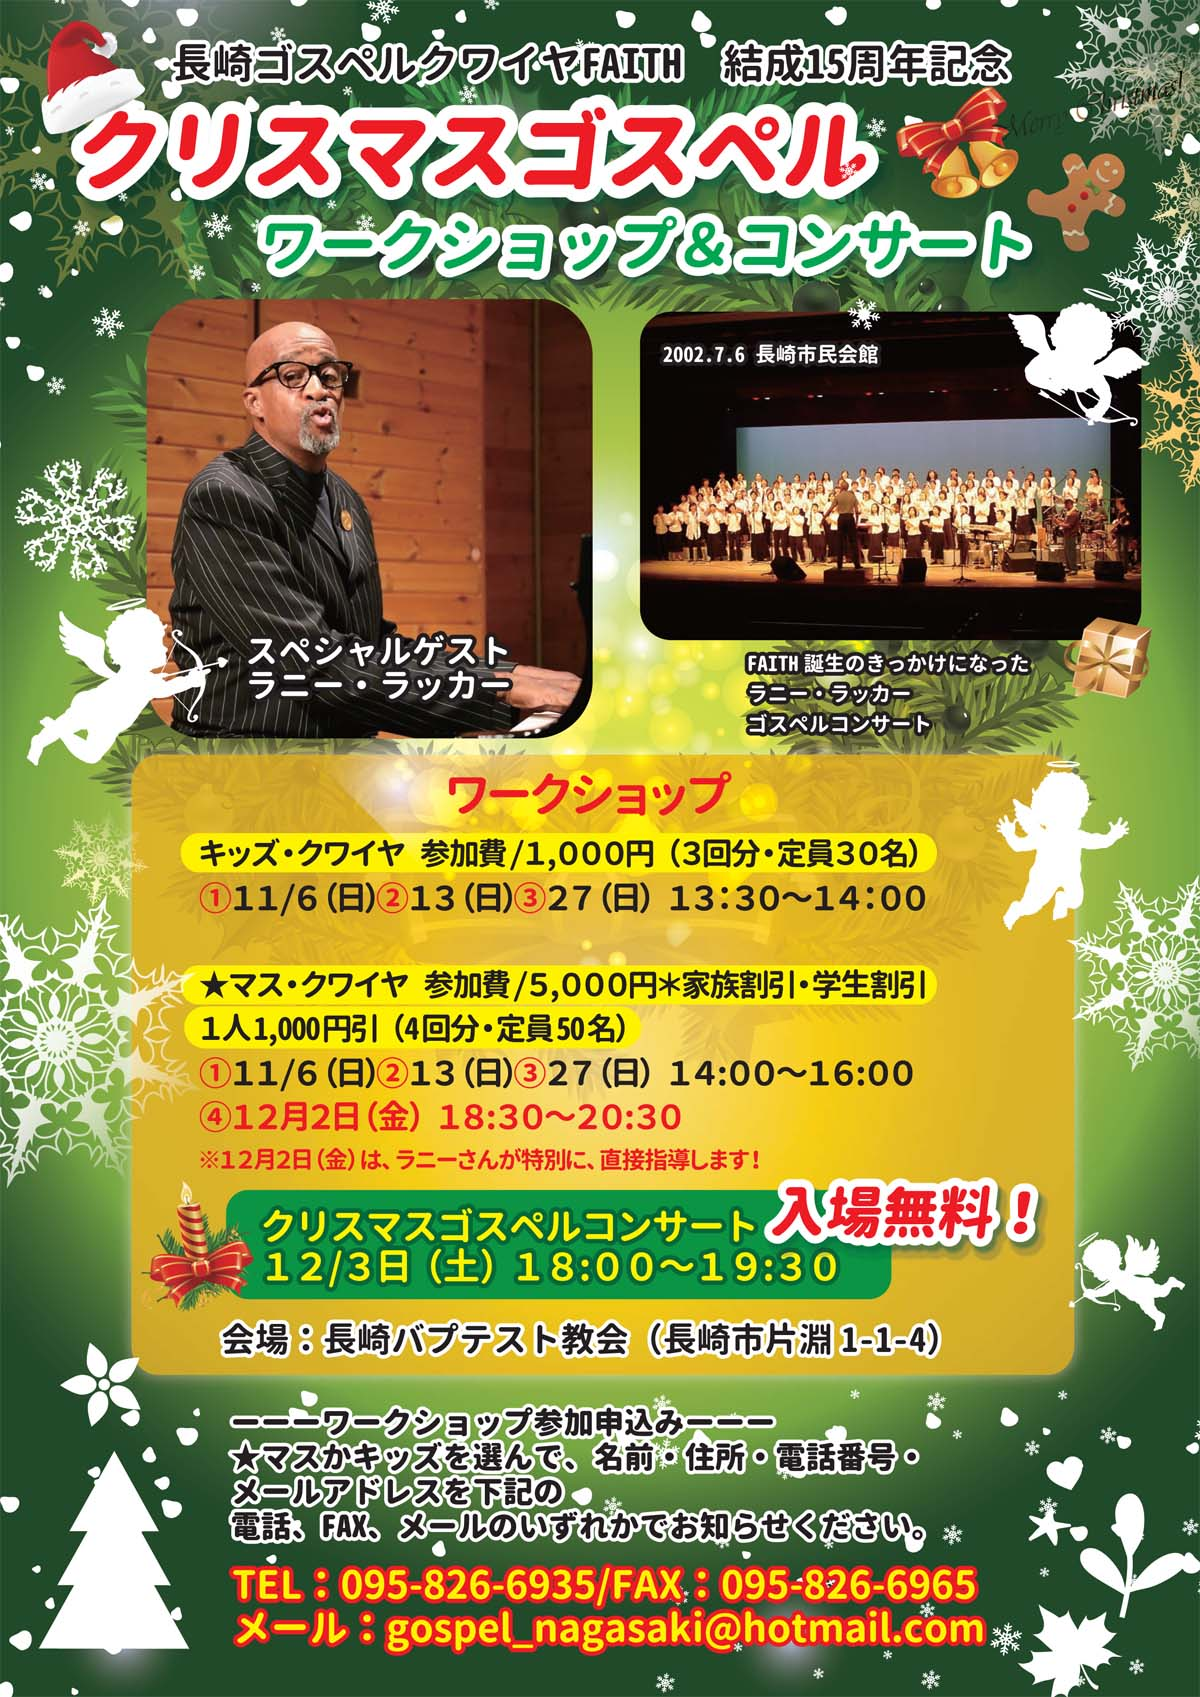 Christmas Gospel Concert and Workshop pamplete